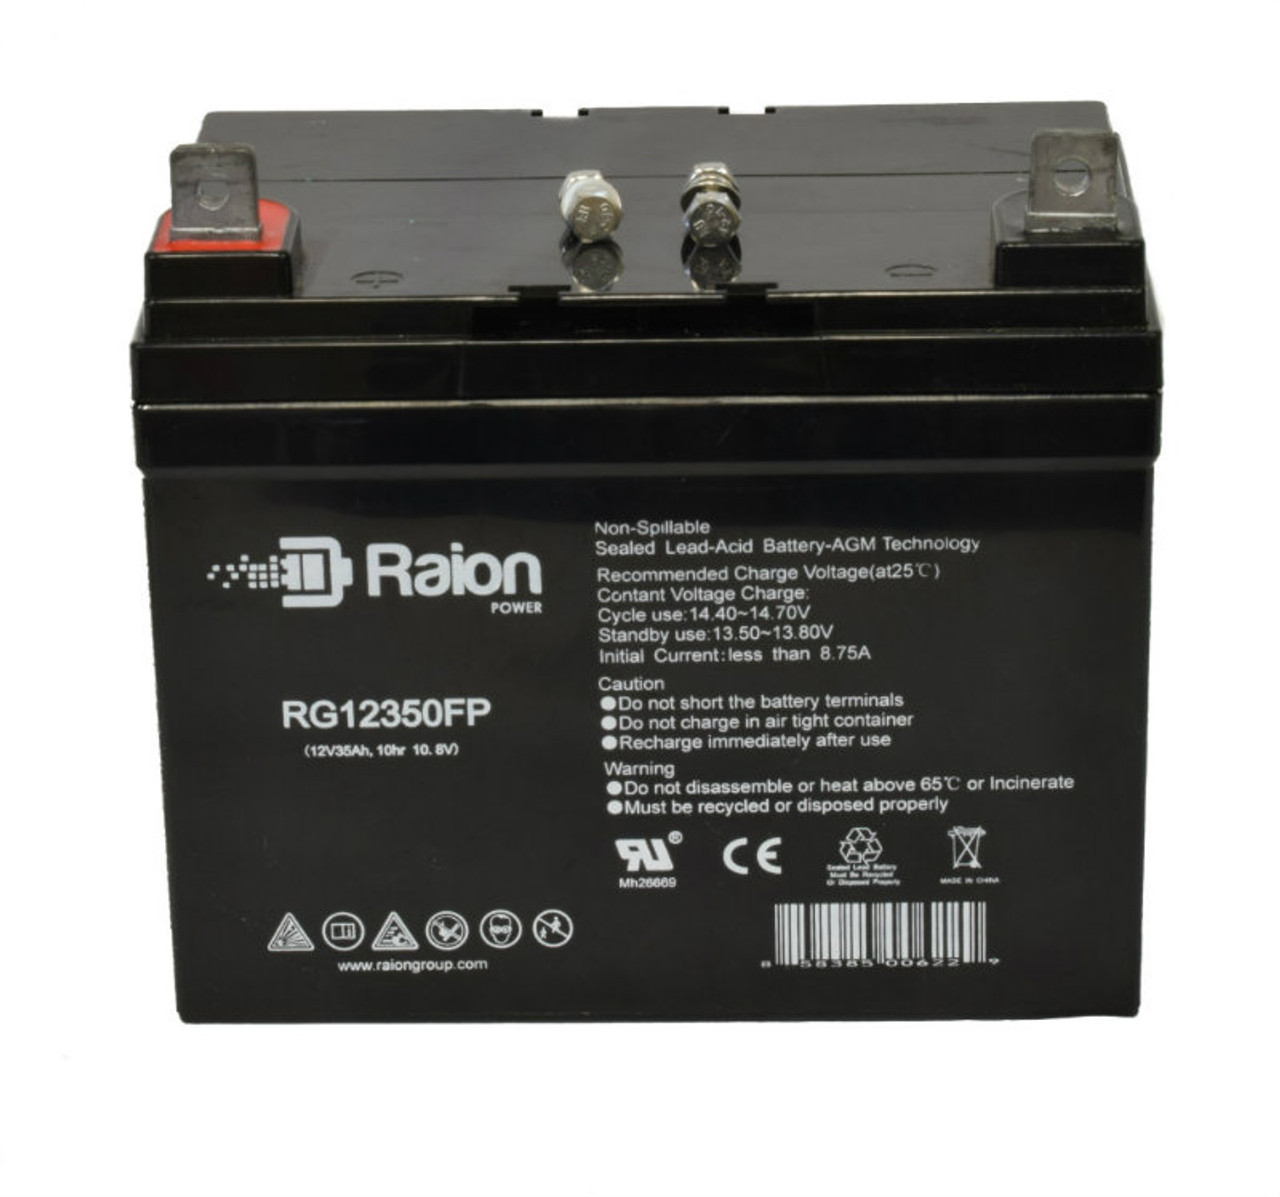 RG12350FP Sealed Lead Acid Battery Pack For Golden Technology BuzzAround 4 Wheel Mobility Scooter